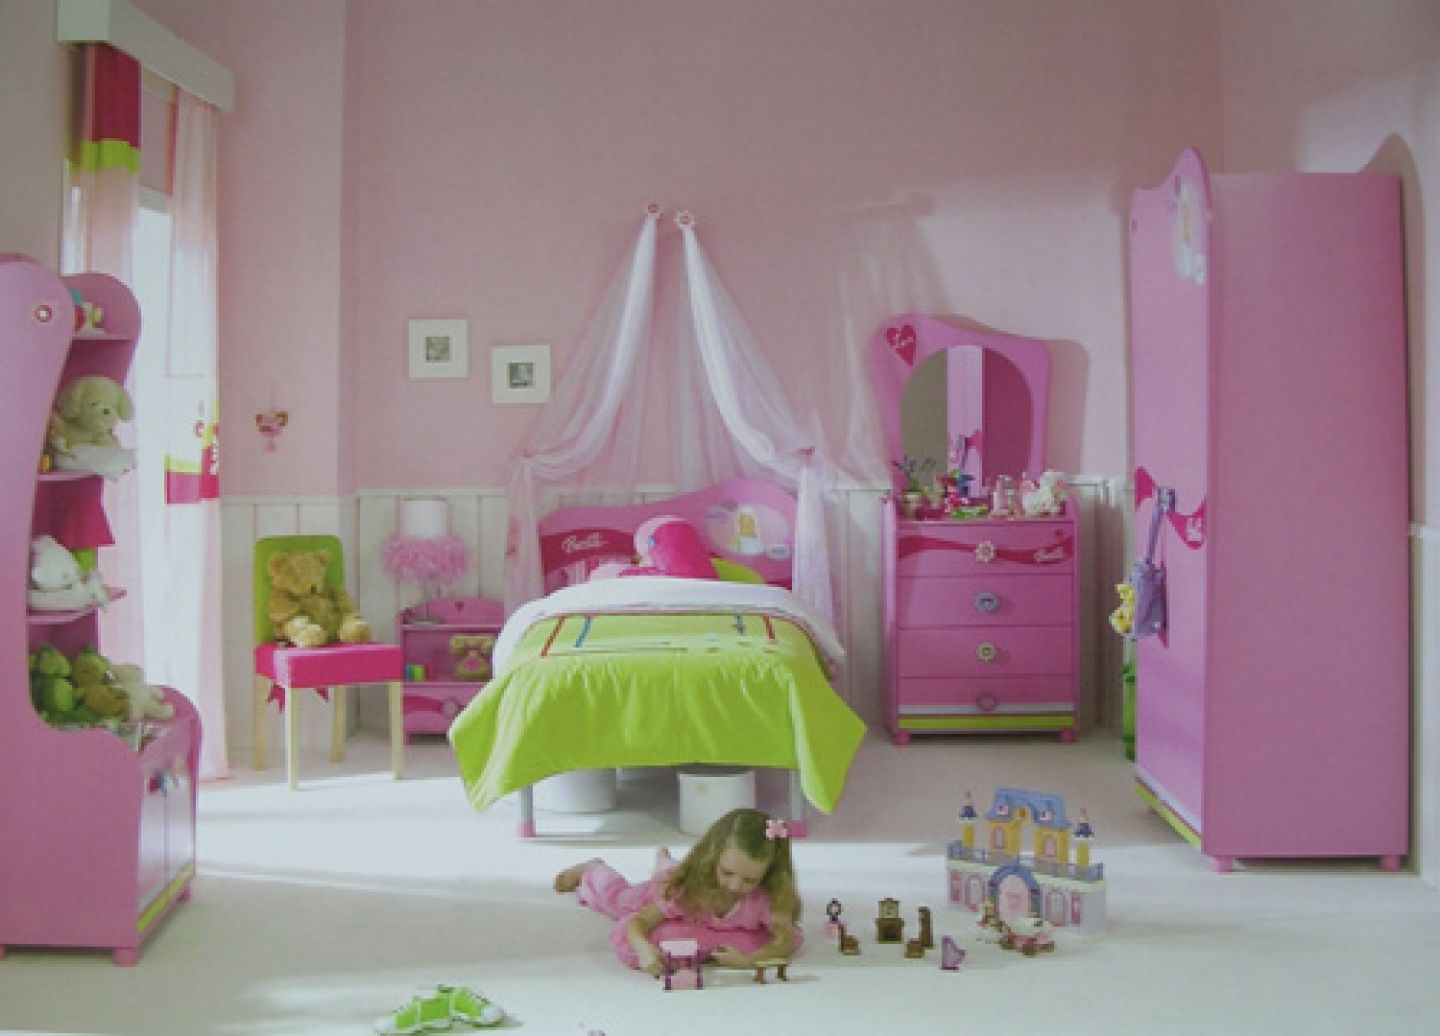 kids bedroom ideas kids bedroom pinky decoration inspiration girls bedroom sets decorating ideas for little - Girls Bedroom Decorating Ideas